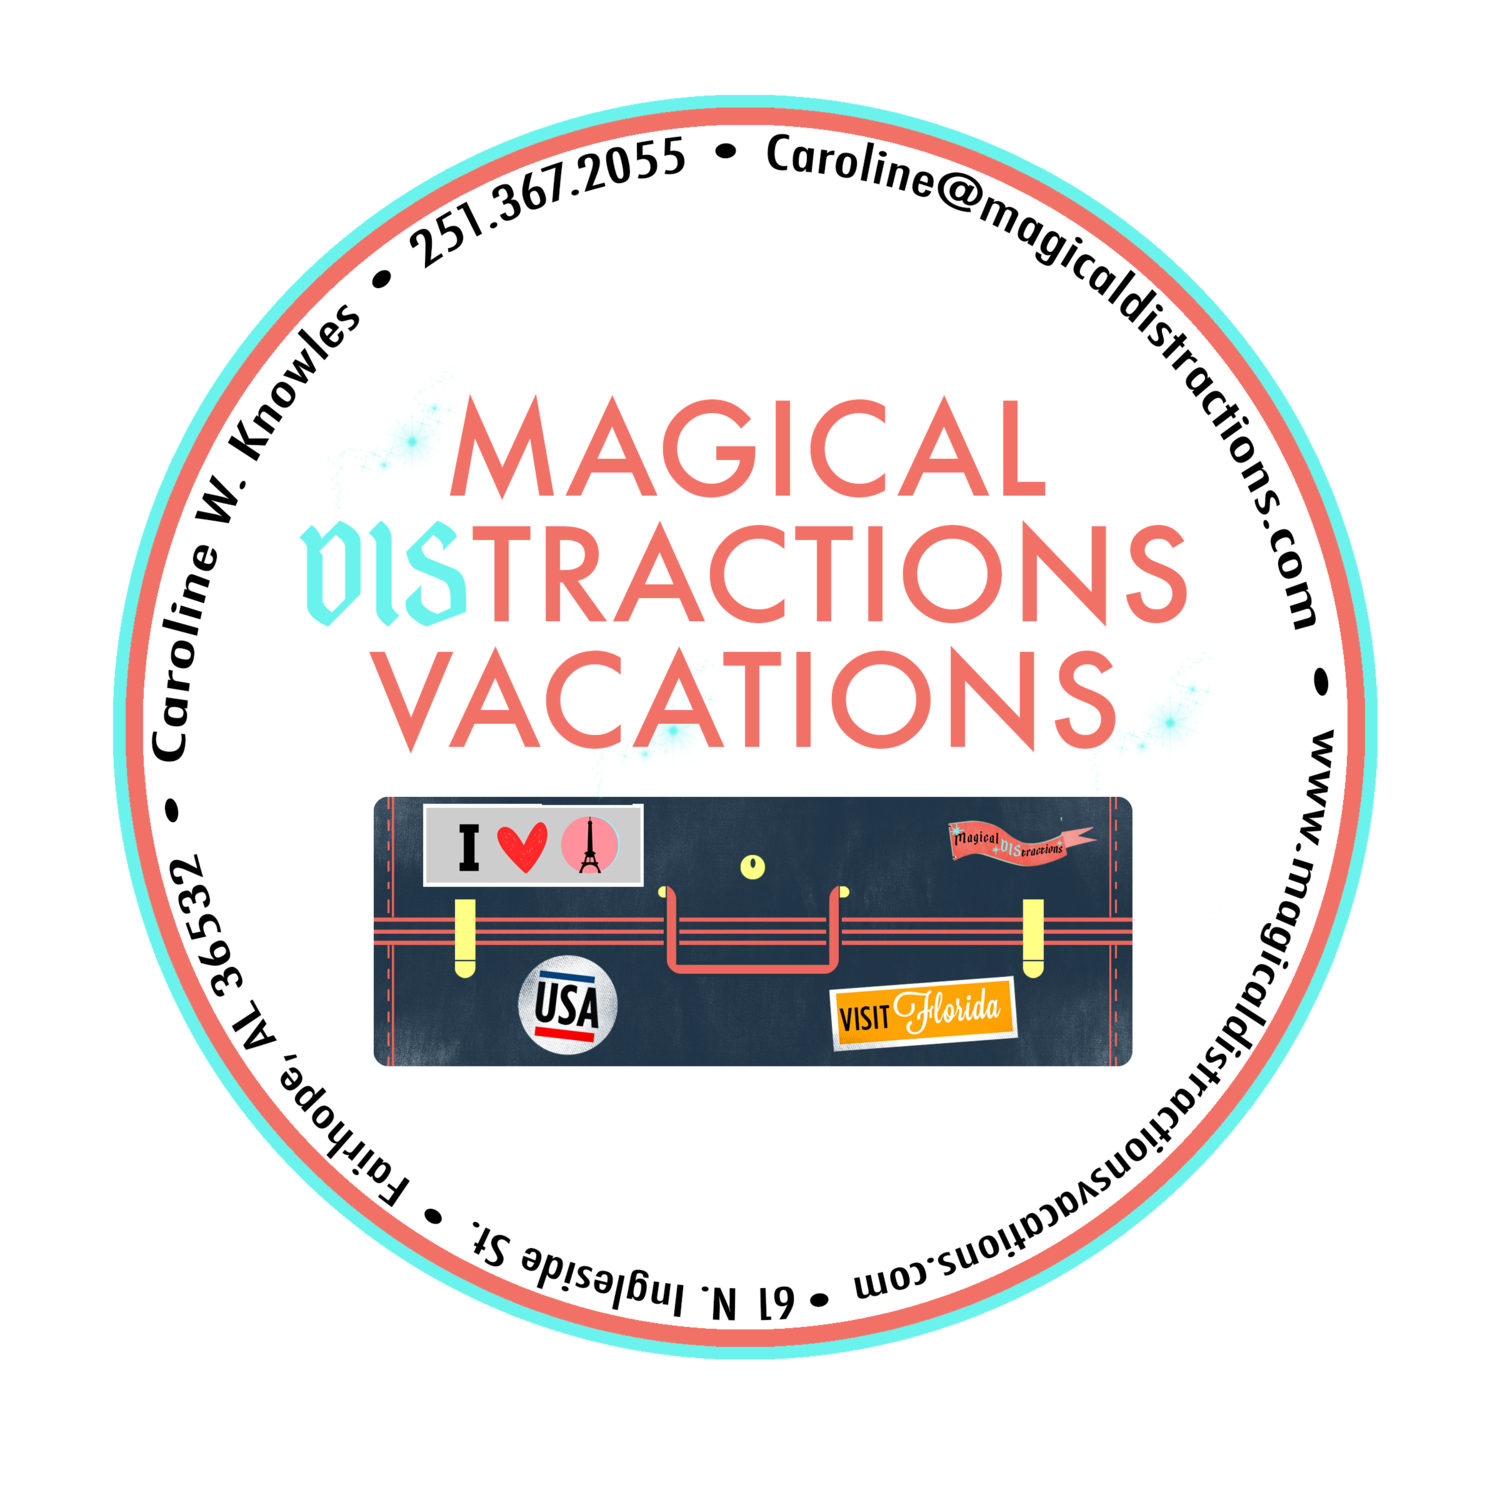 Magical DIStractions Vacations